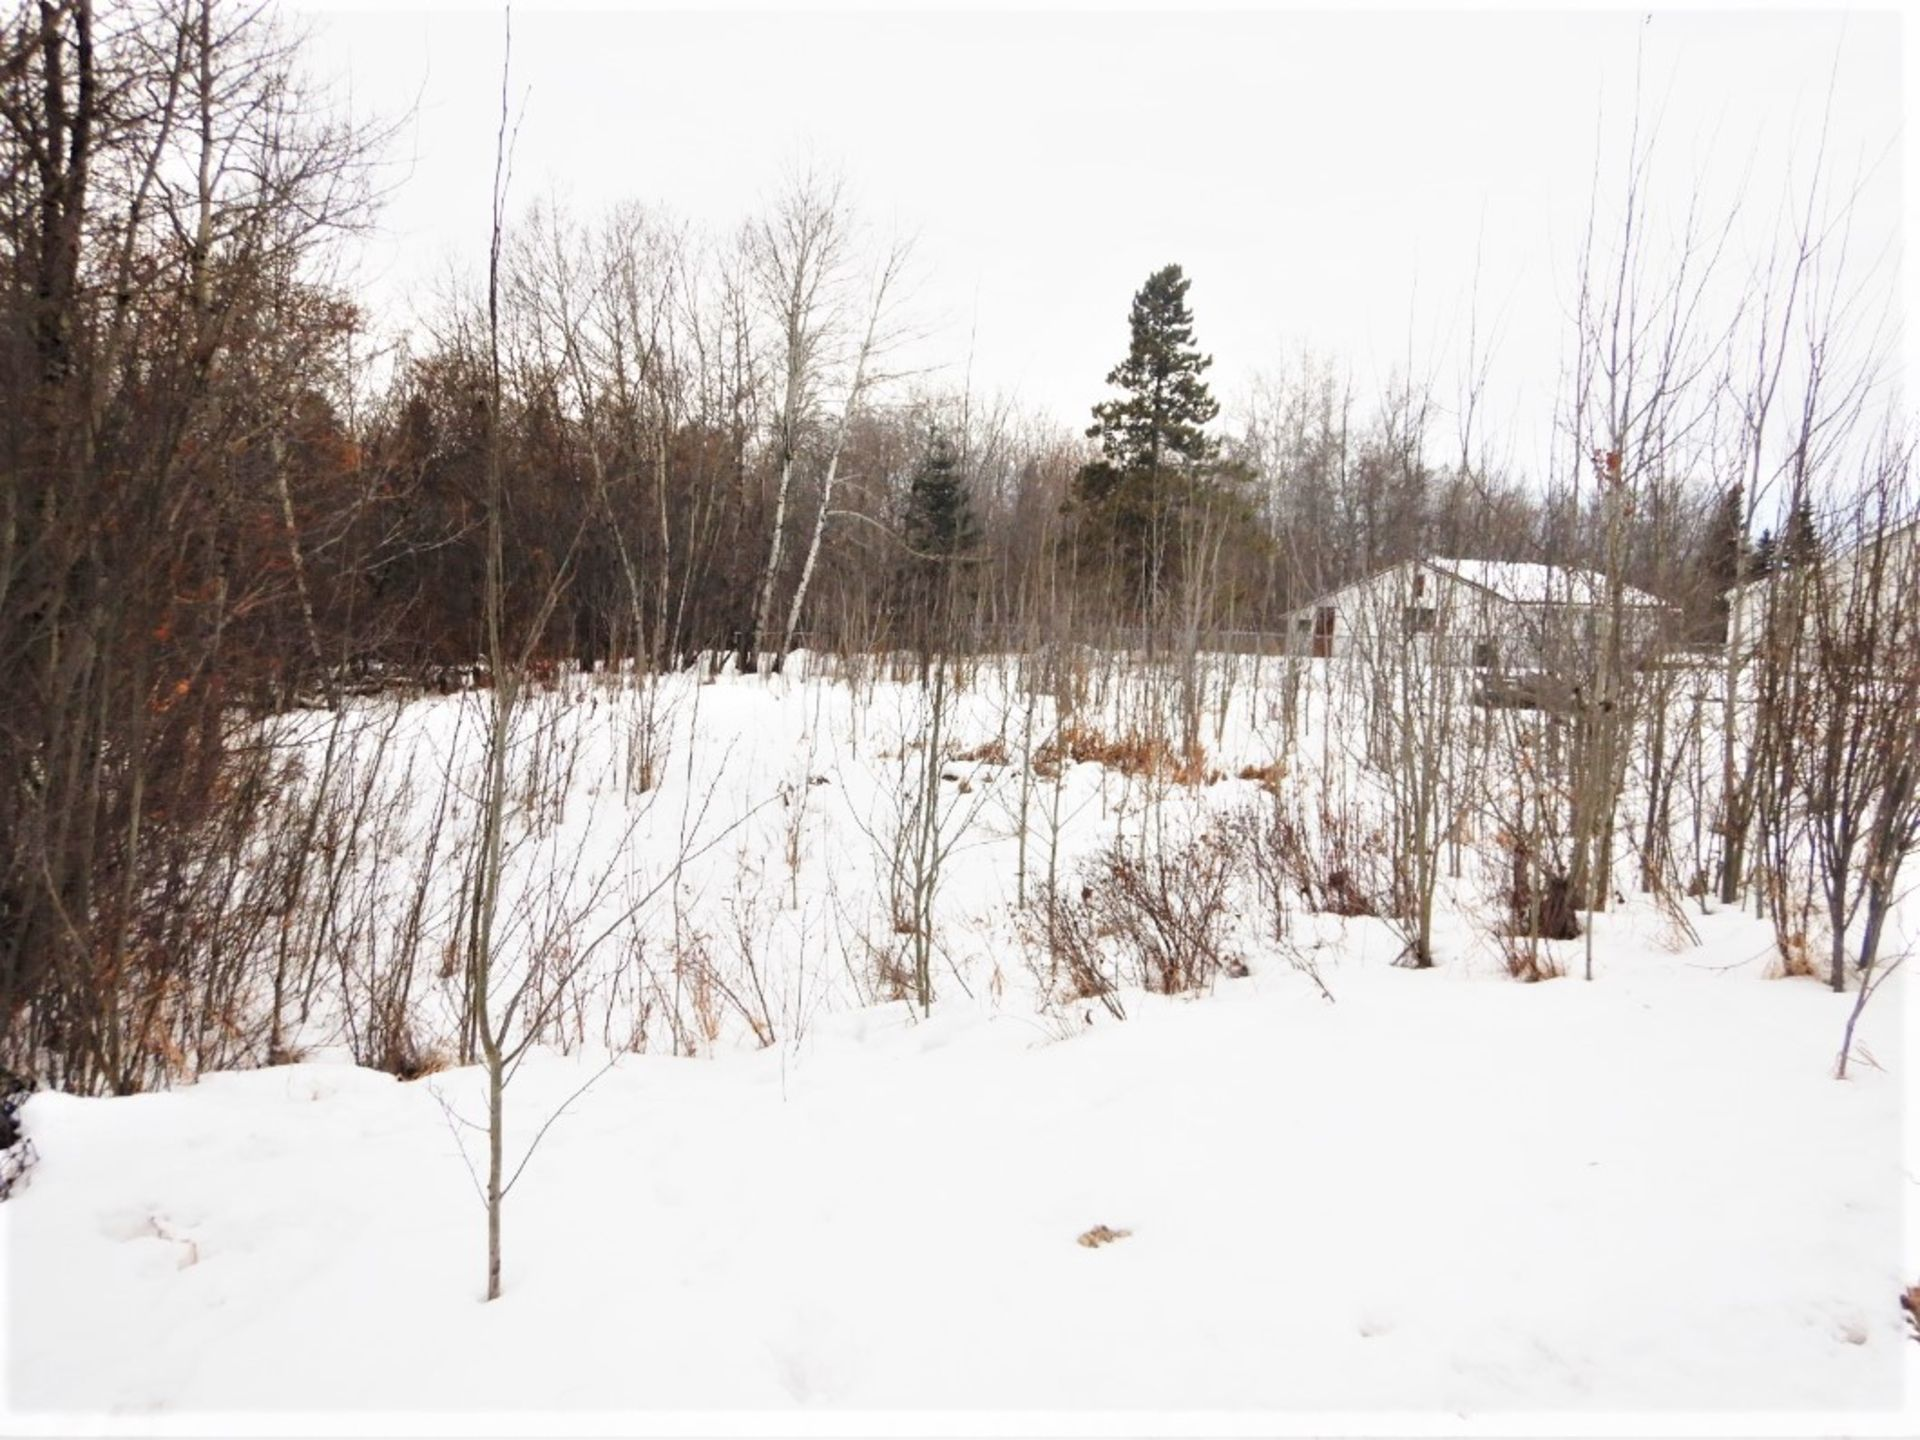 BARE LOT IN THE VILLAGE OF MIRROR, ALBERTA - LEGAL DESCRIPTION: PLAN 0728572 BLK 40 LOT 38 *ONLY - Image 2 of 4